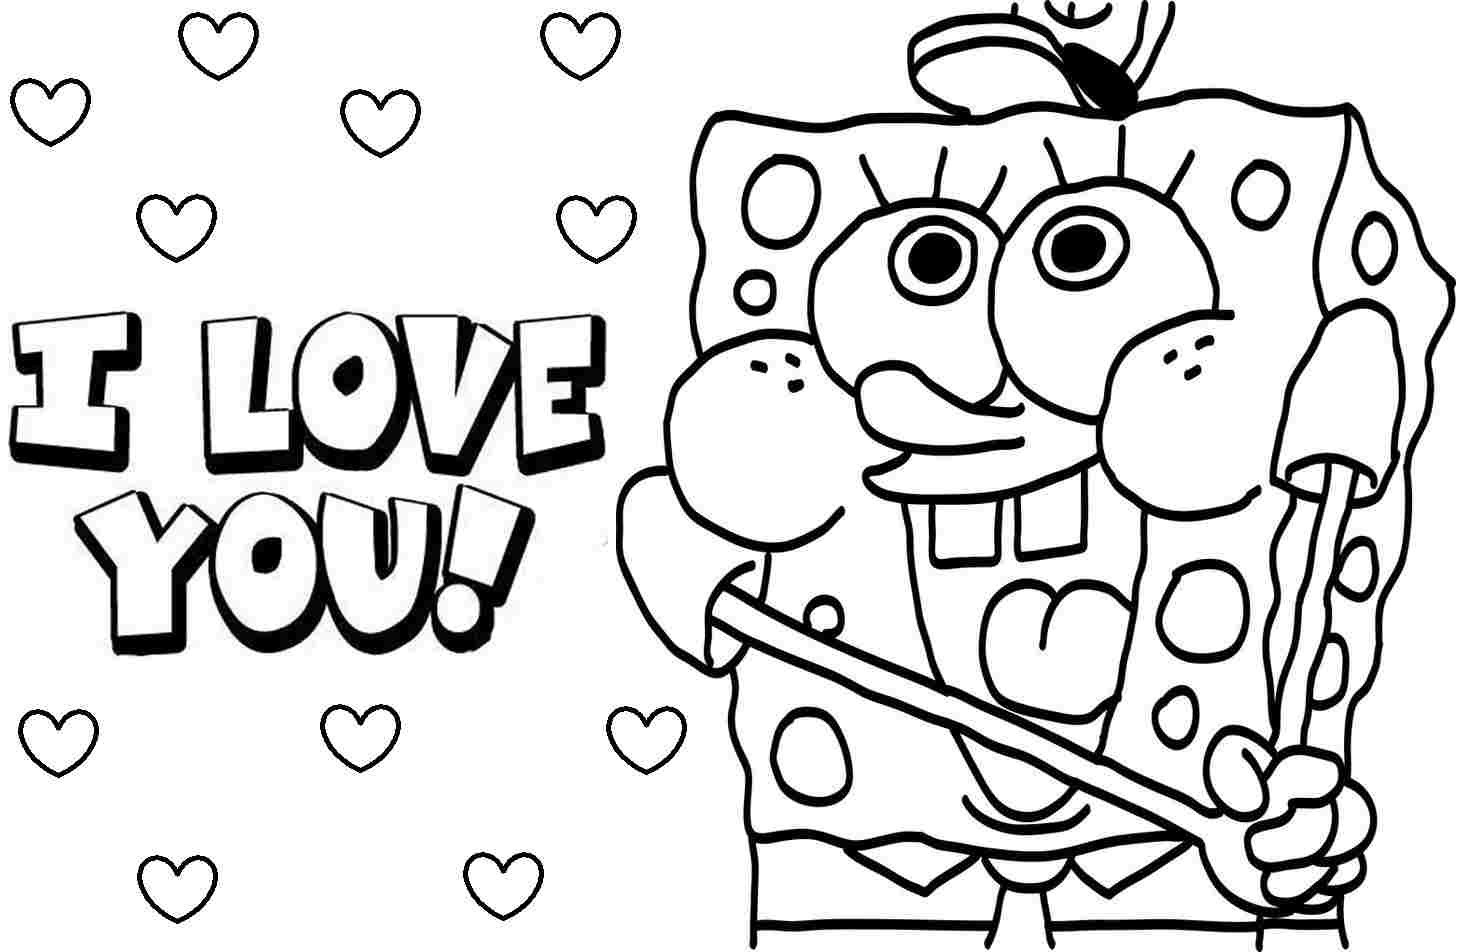 Coloring Books And Pages : Launching Spongebob Squarepants Colouring - Spongebob Squarepants Coloring Pages Free Printable